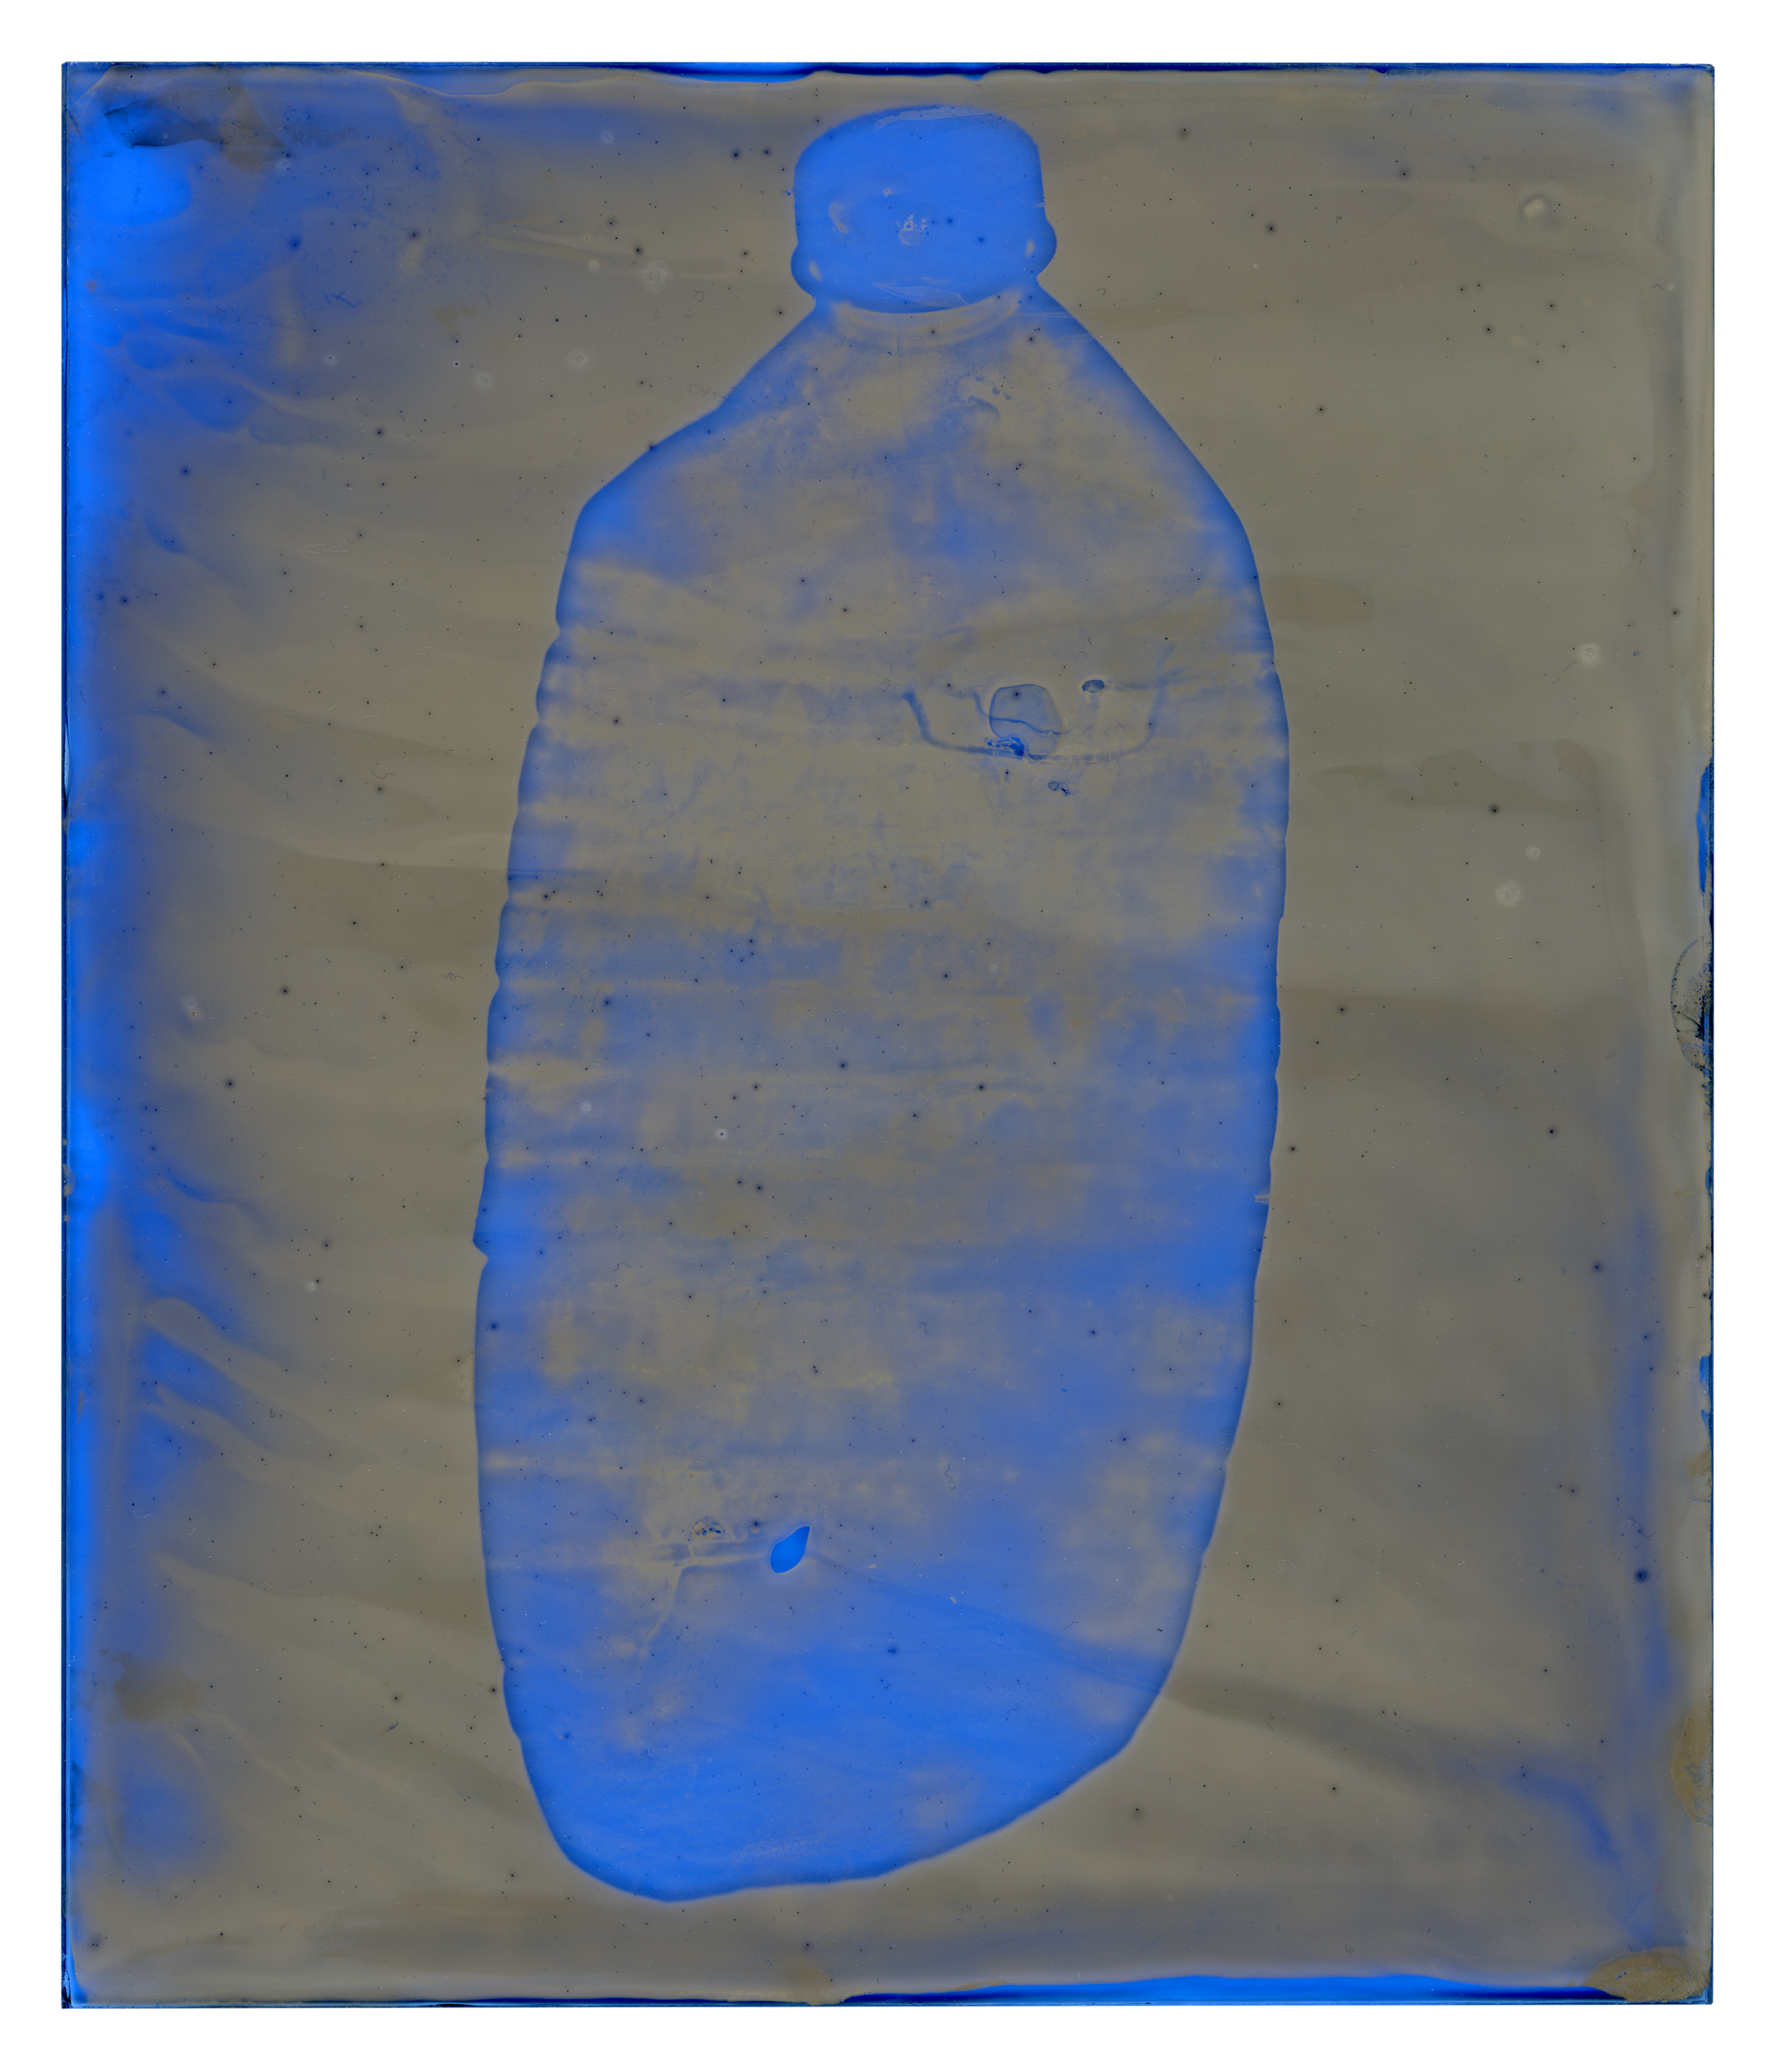 Ellenwood_Bottle_002.jpg